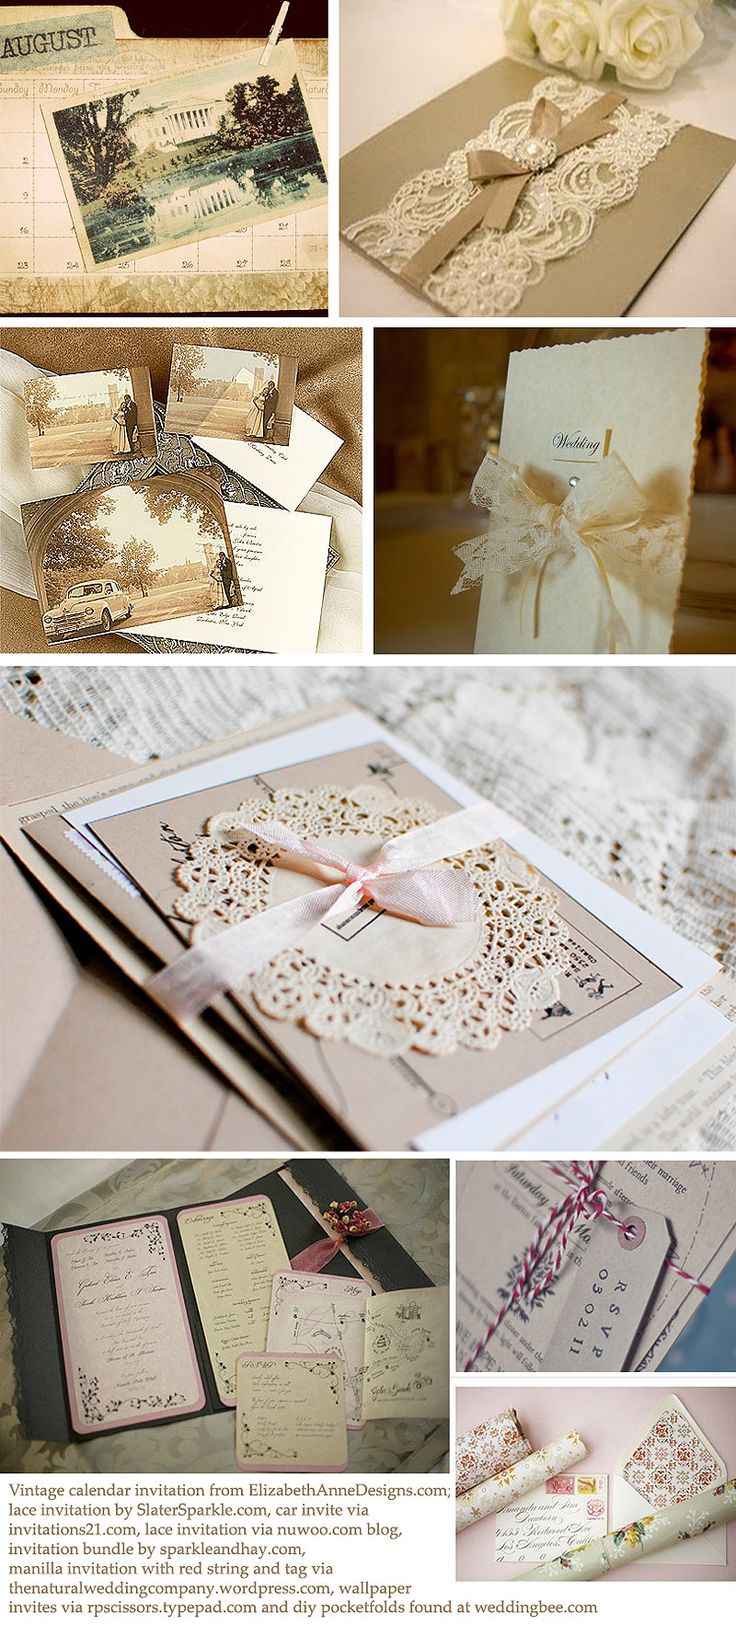 diy rustic wedding invitations burlap%0A vintageweddinginvitationinspirationboardblog jpg